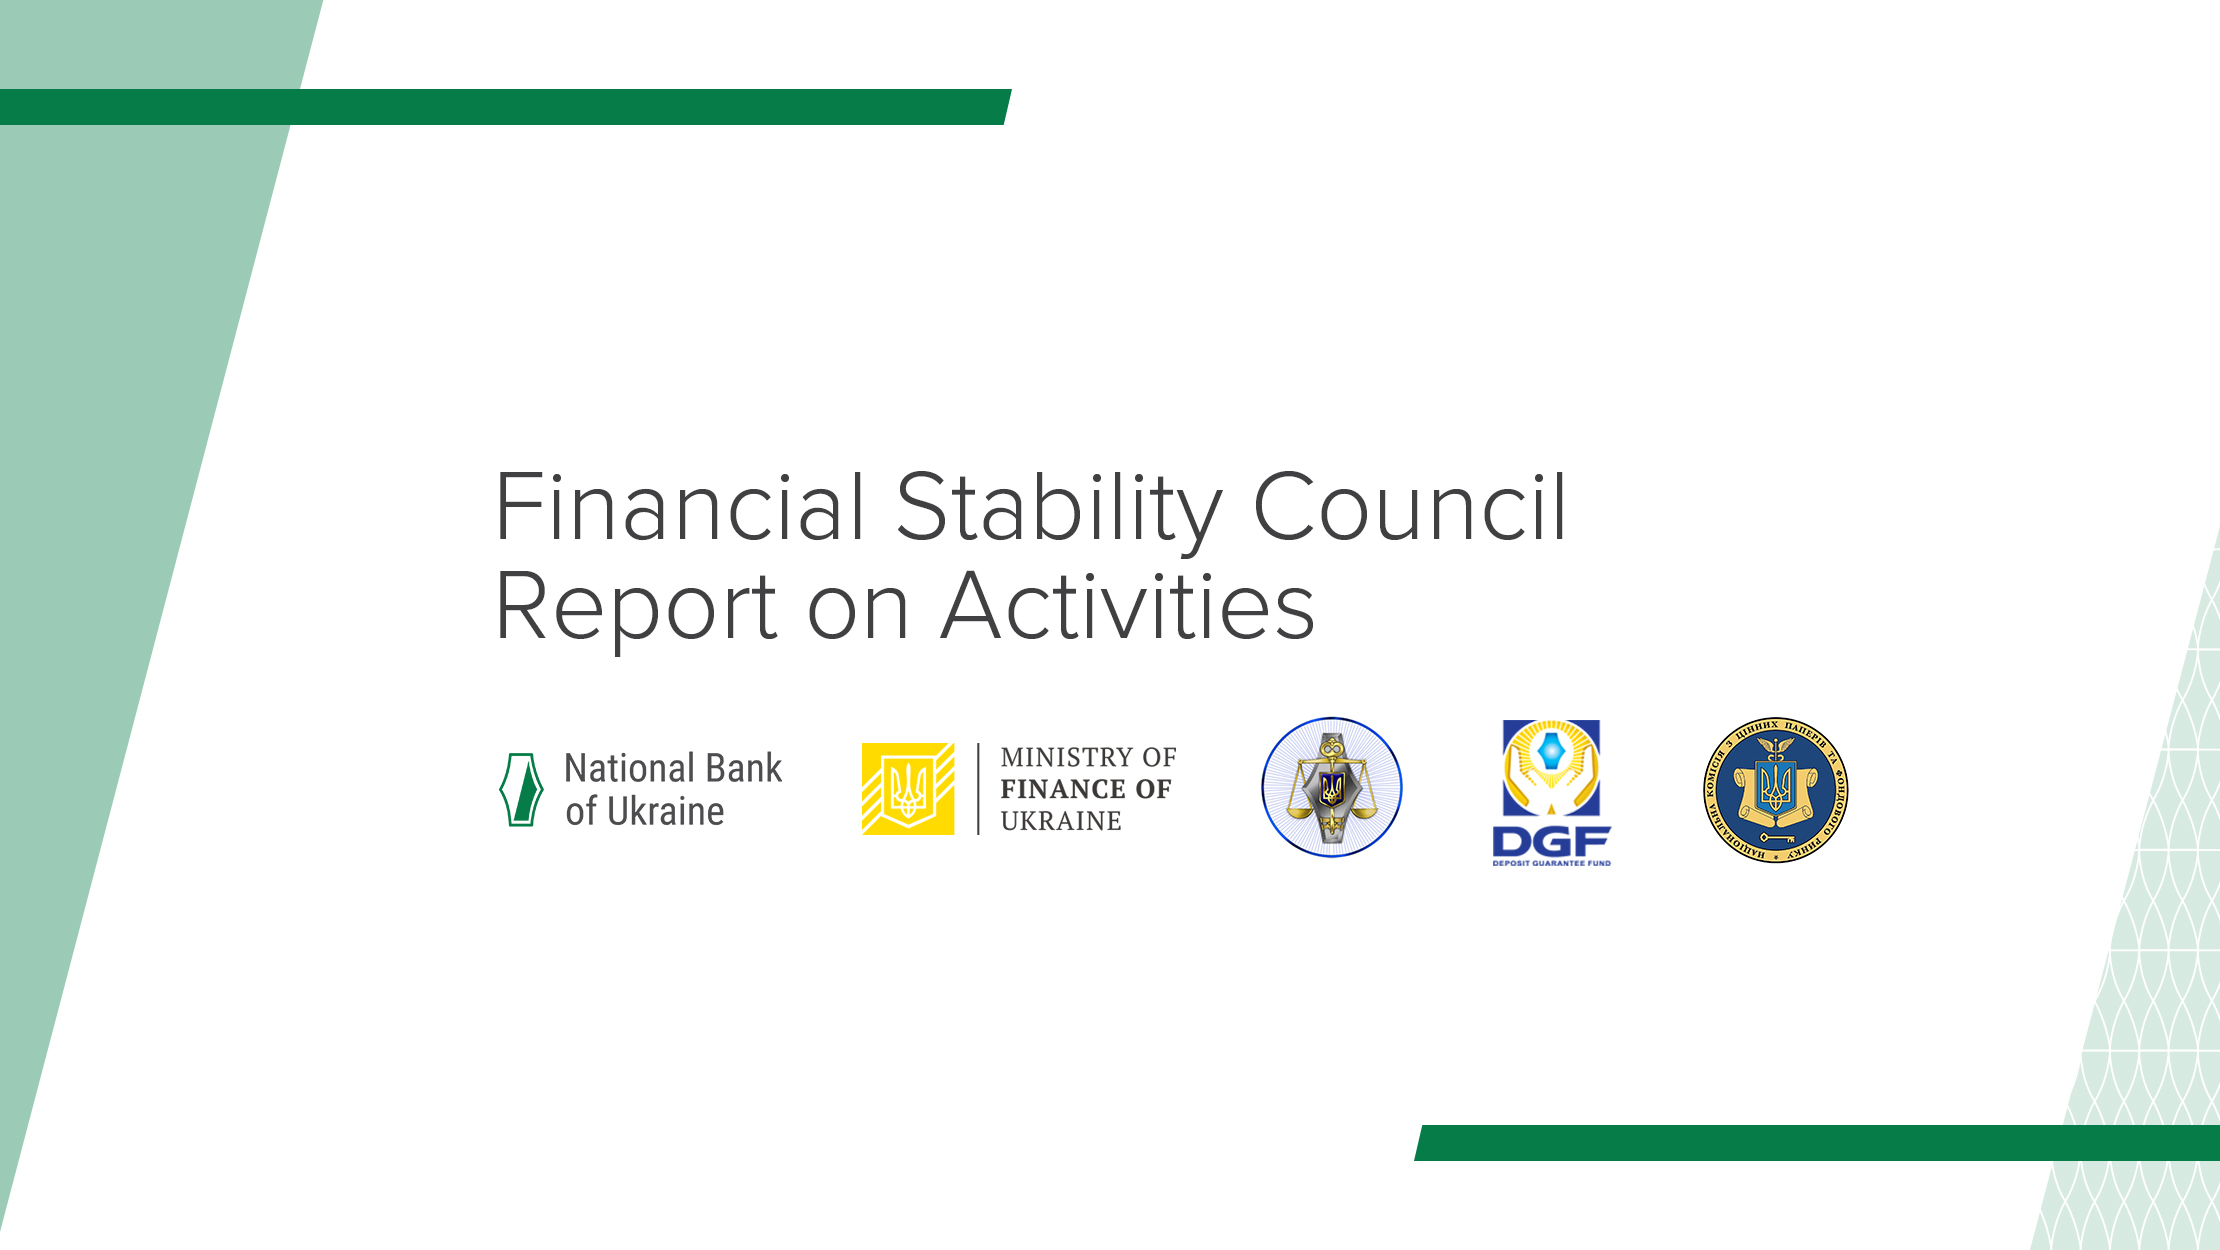 Financial Stability Council Report on Activities (June 2017 – July 2018)